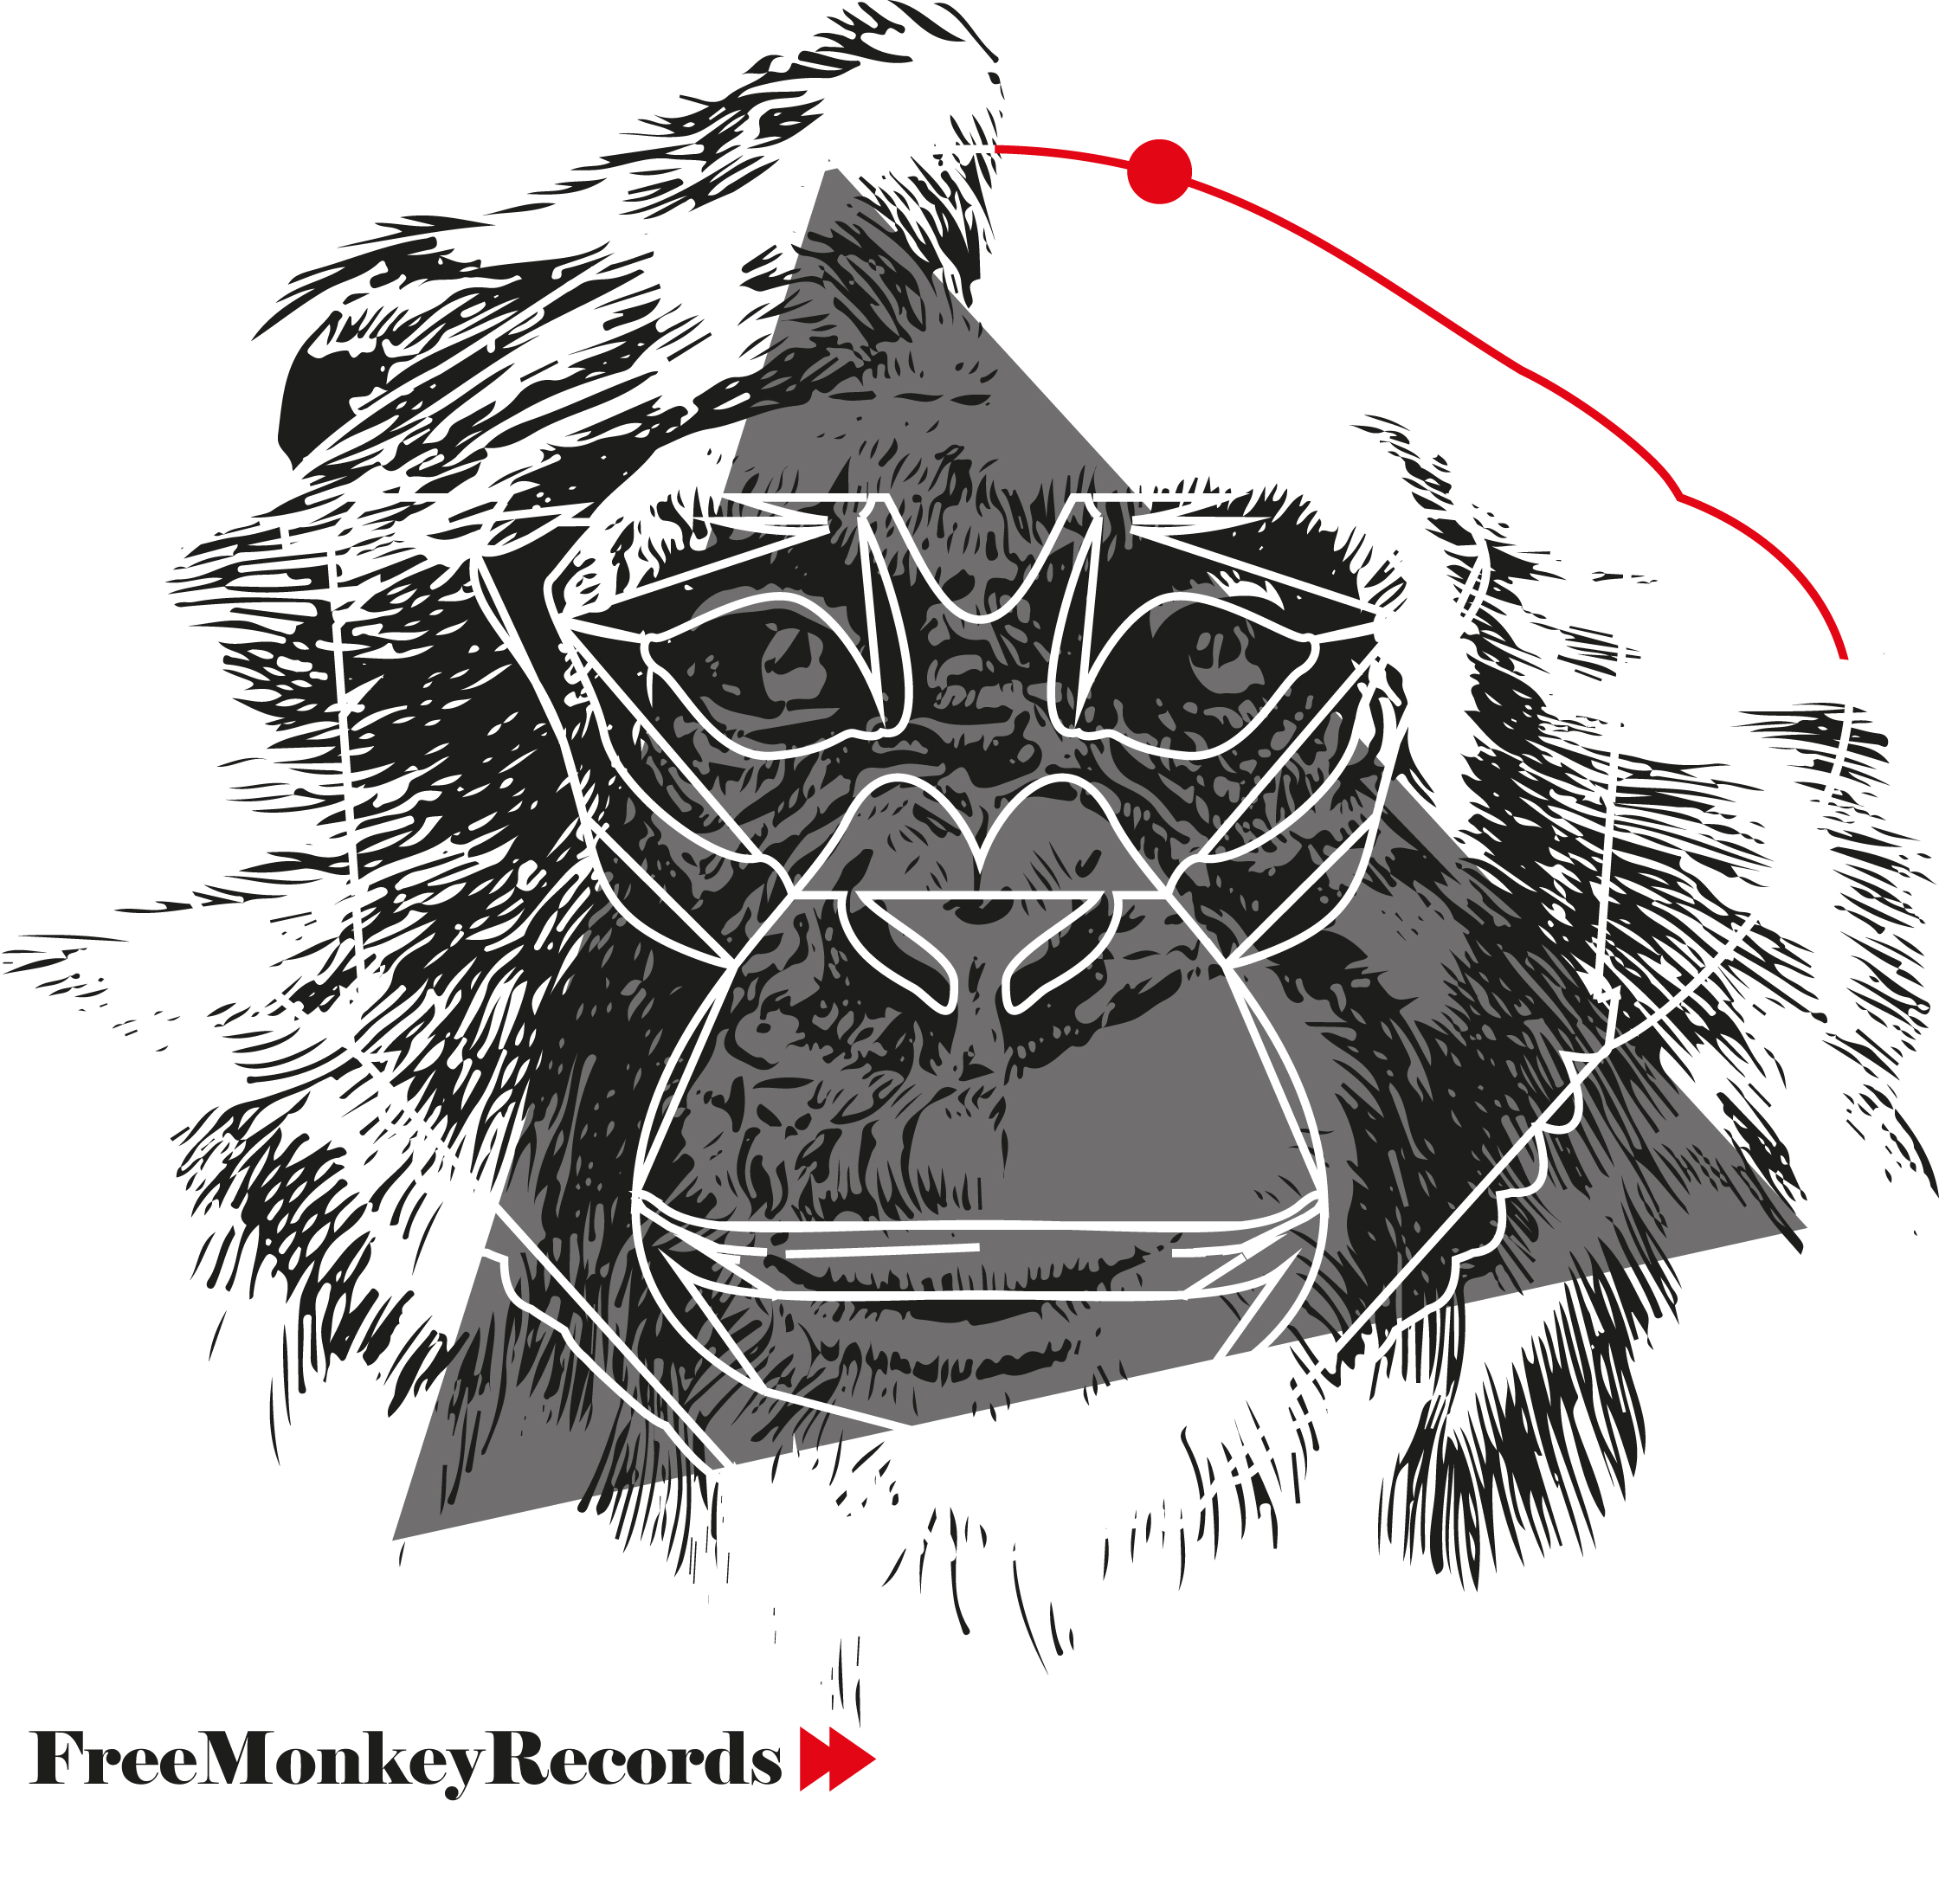 FreeMonkeyRecords2